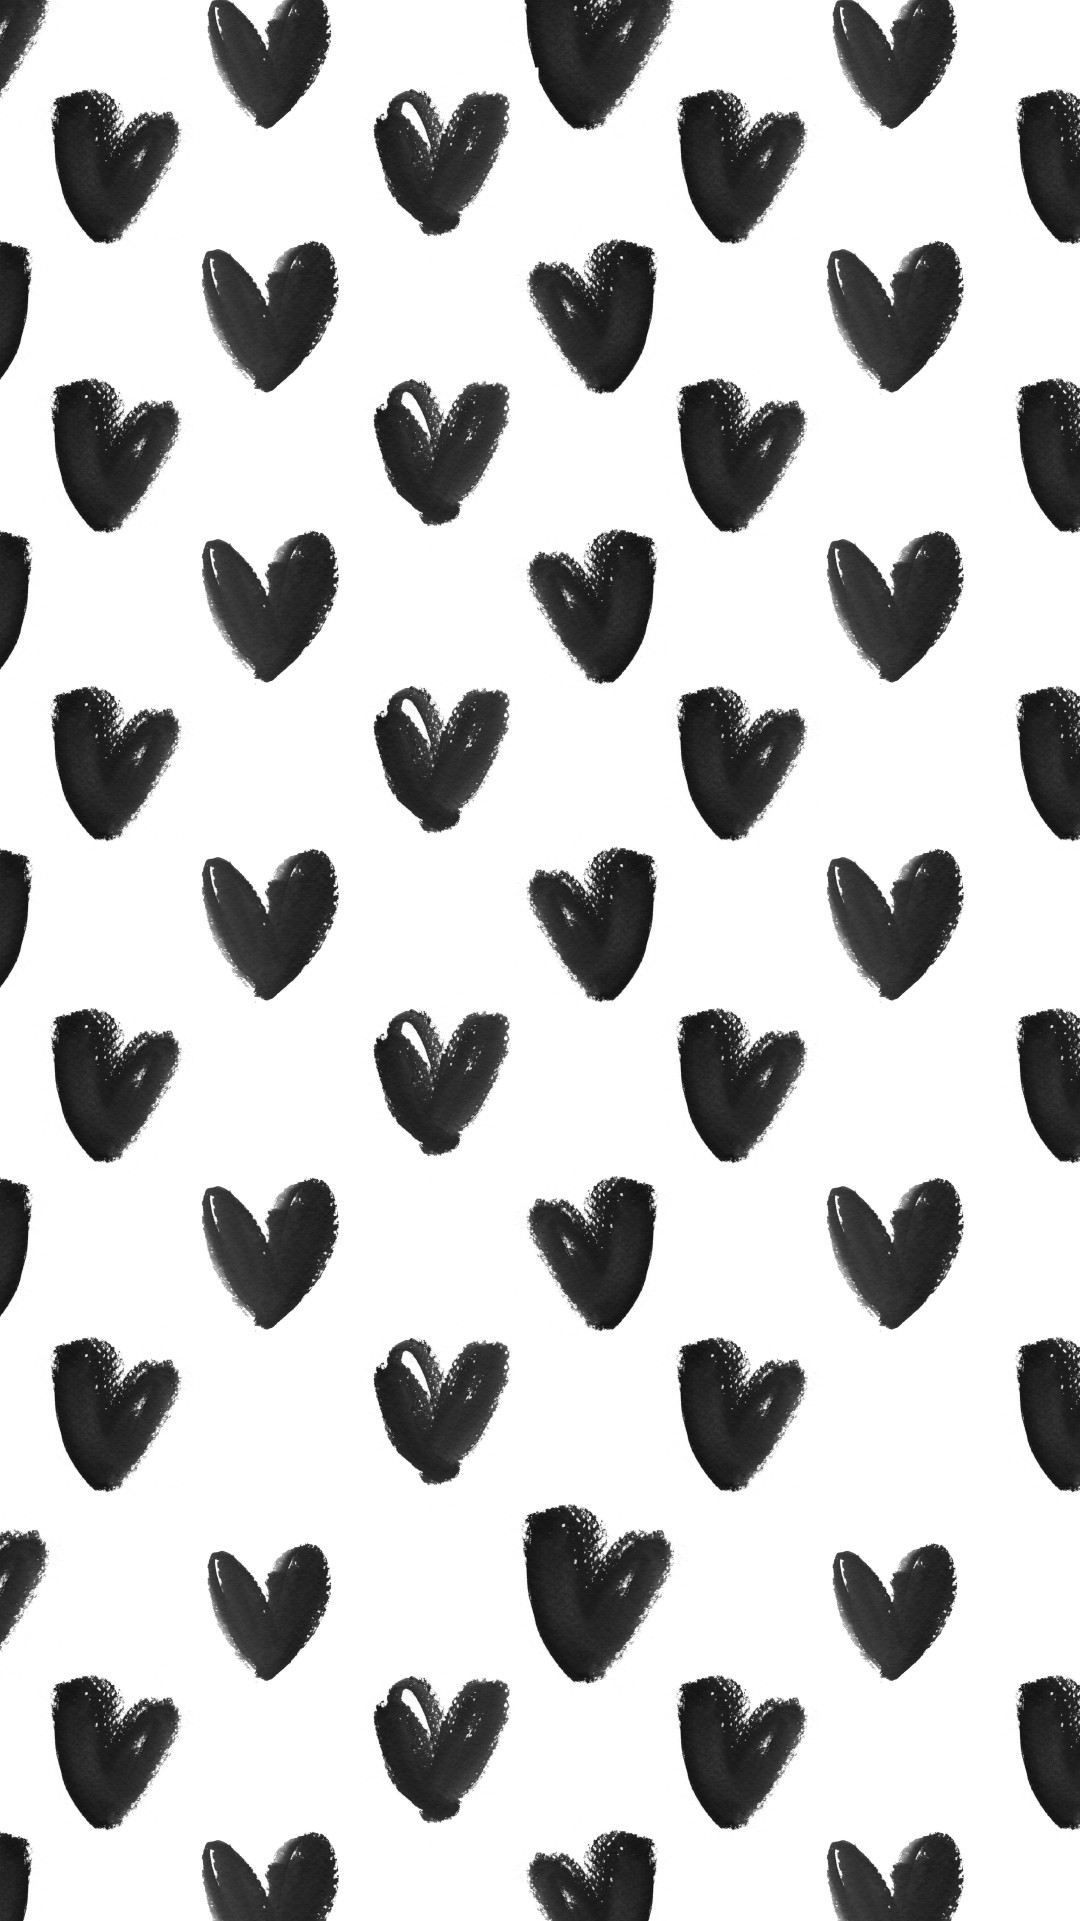 1080x1921 Black White watercolour hearts iphone background wallpaper phone lock  screen More